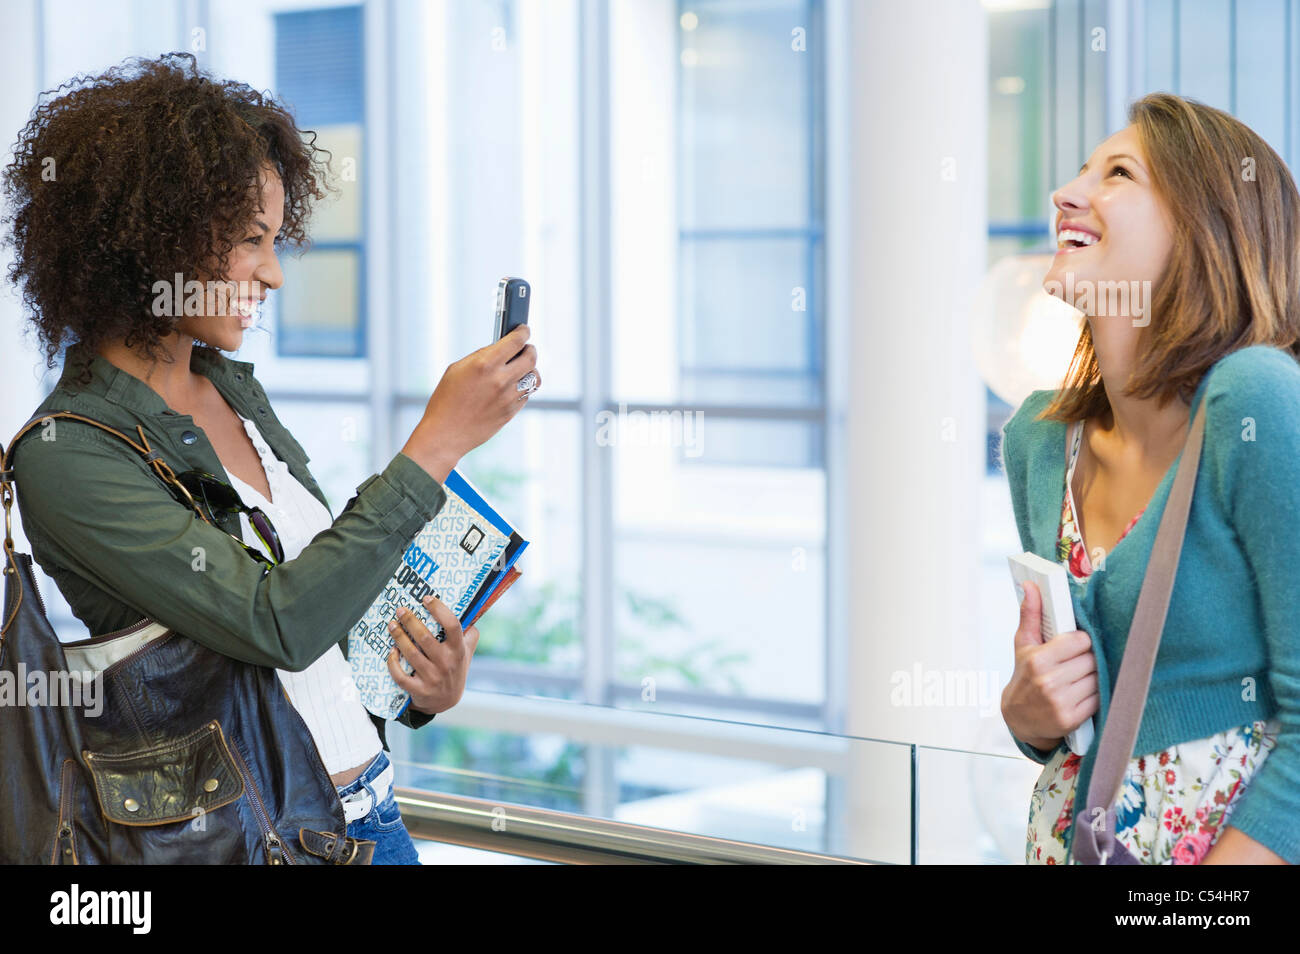 African American woman taking photos of her Caucasian friend - Stock Image